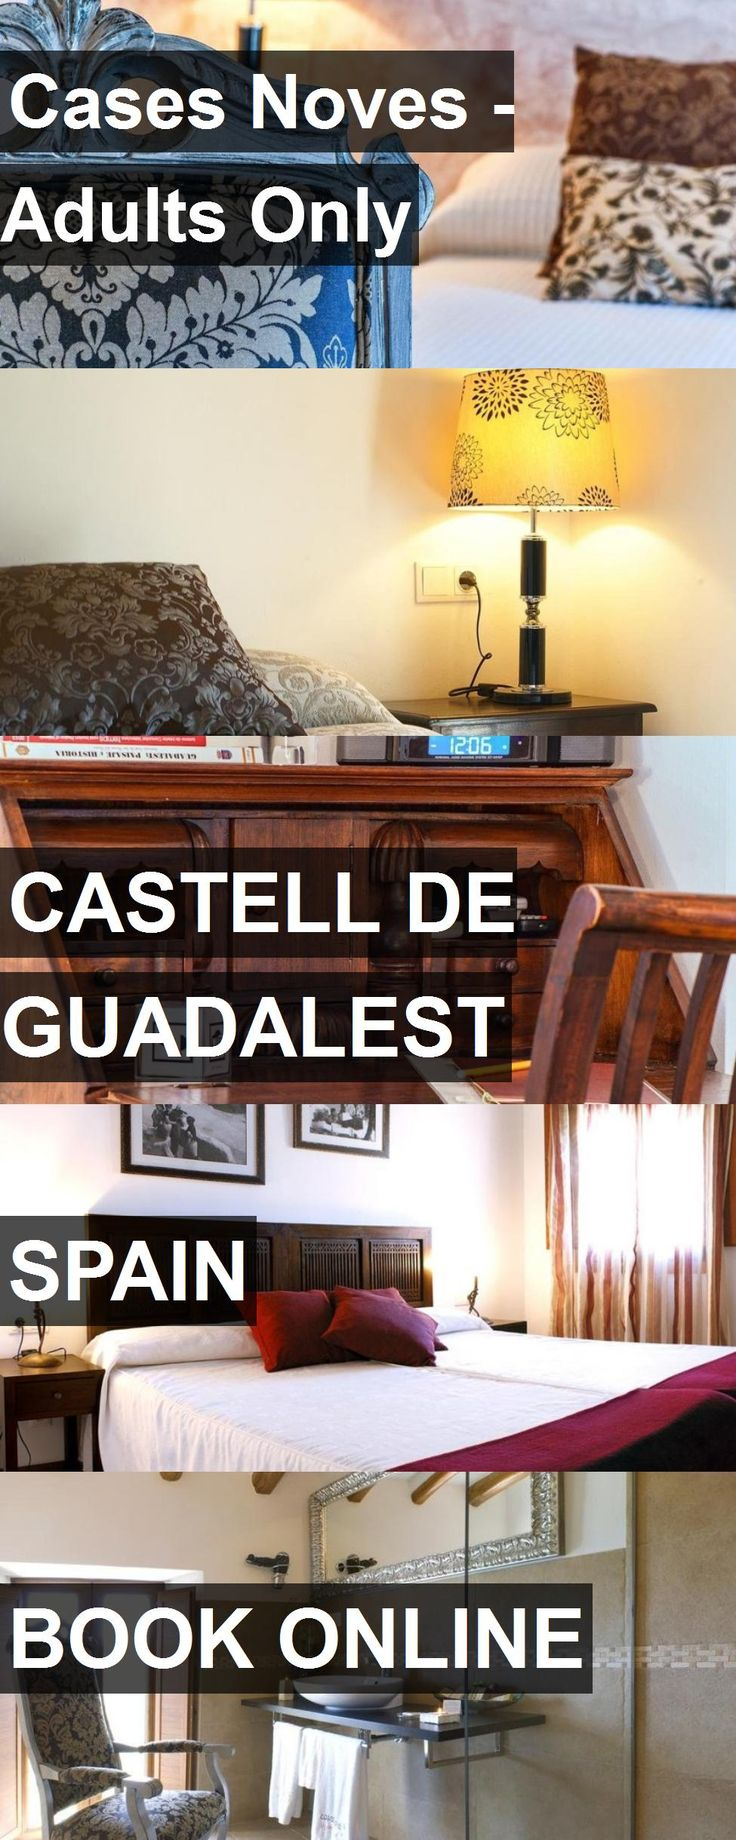 Hotel Cases Noves - Adults Only in Castell de Guadalest, Spain. For more information, photos, reviews and best prices please follow the link. #Spain #CastelldeGuadalest #travel #vacation #hotel